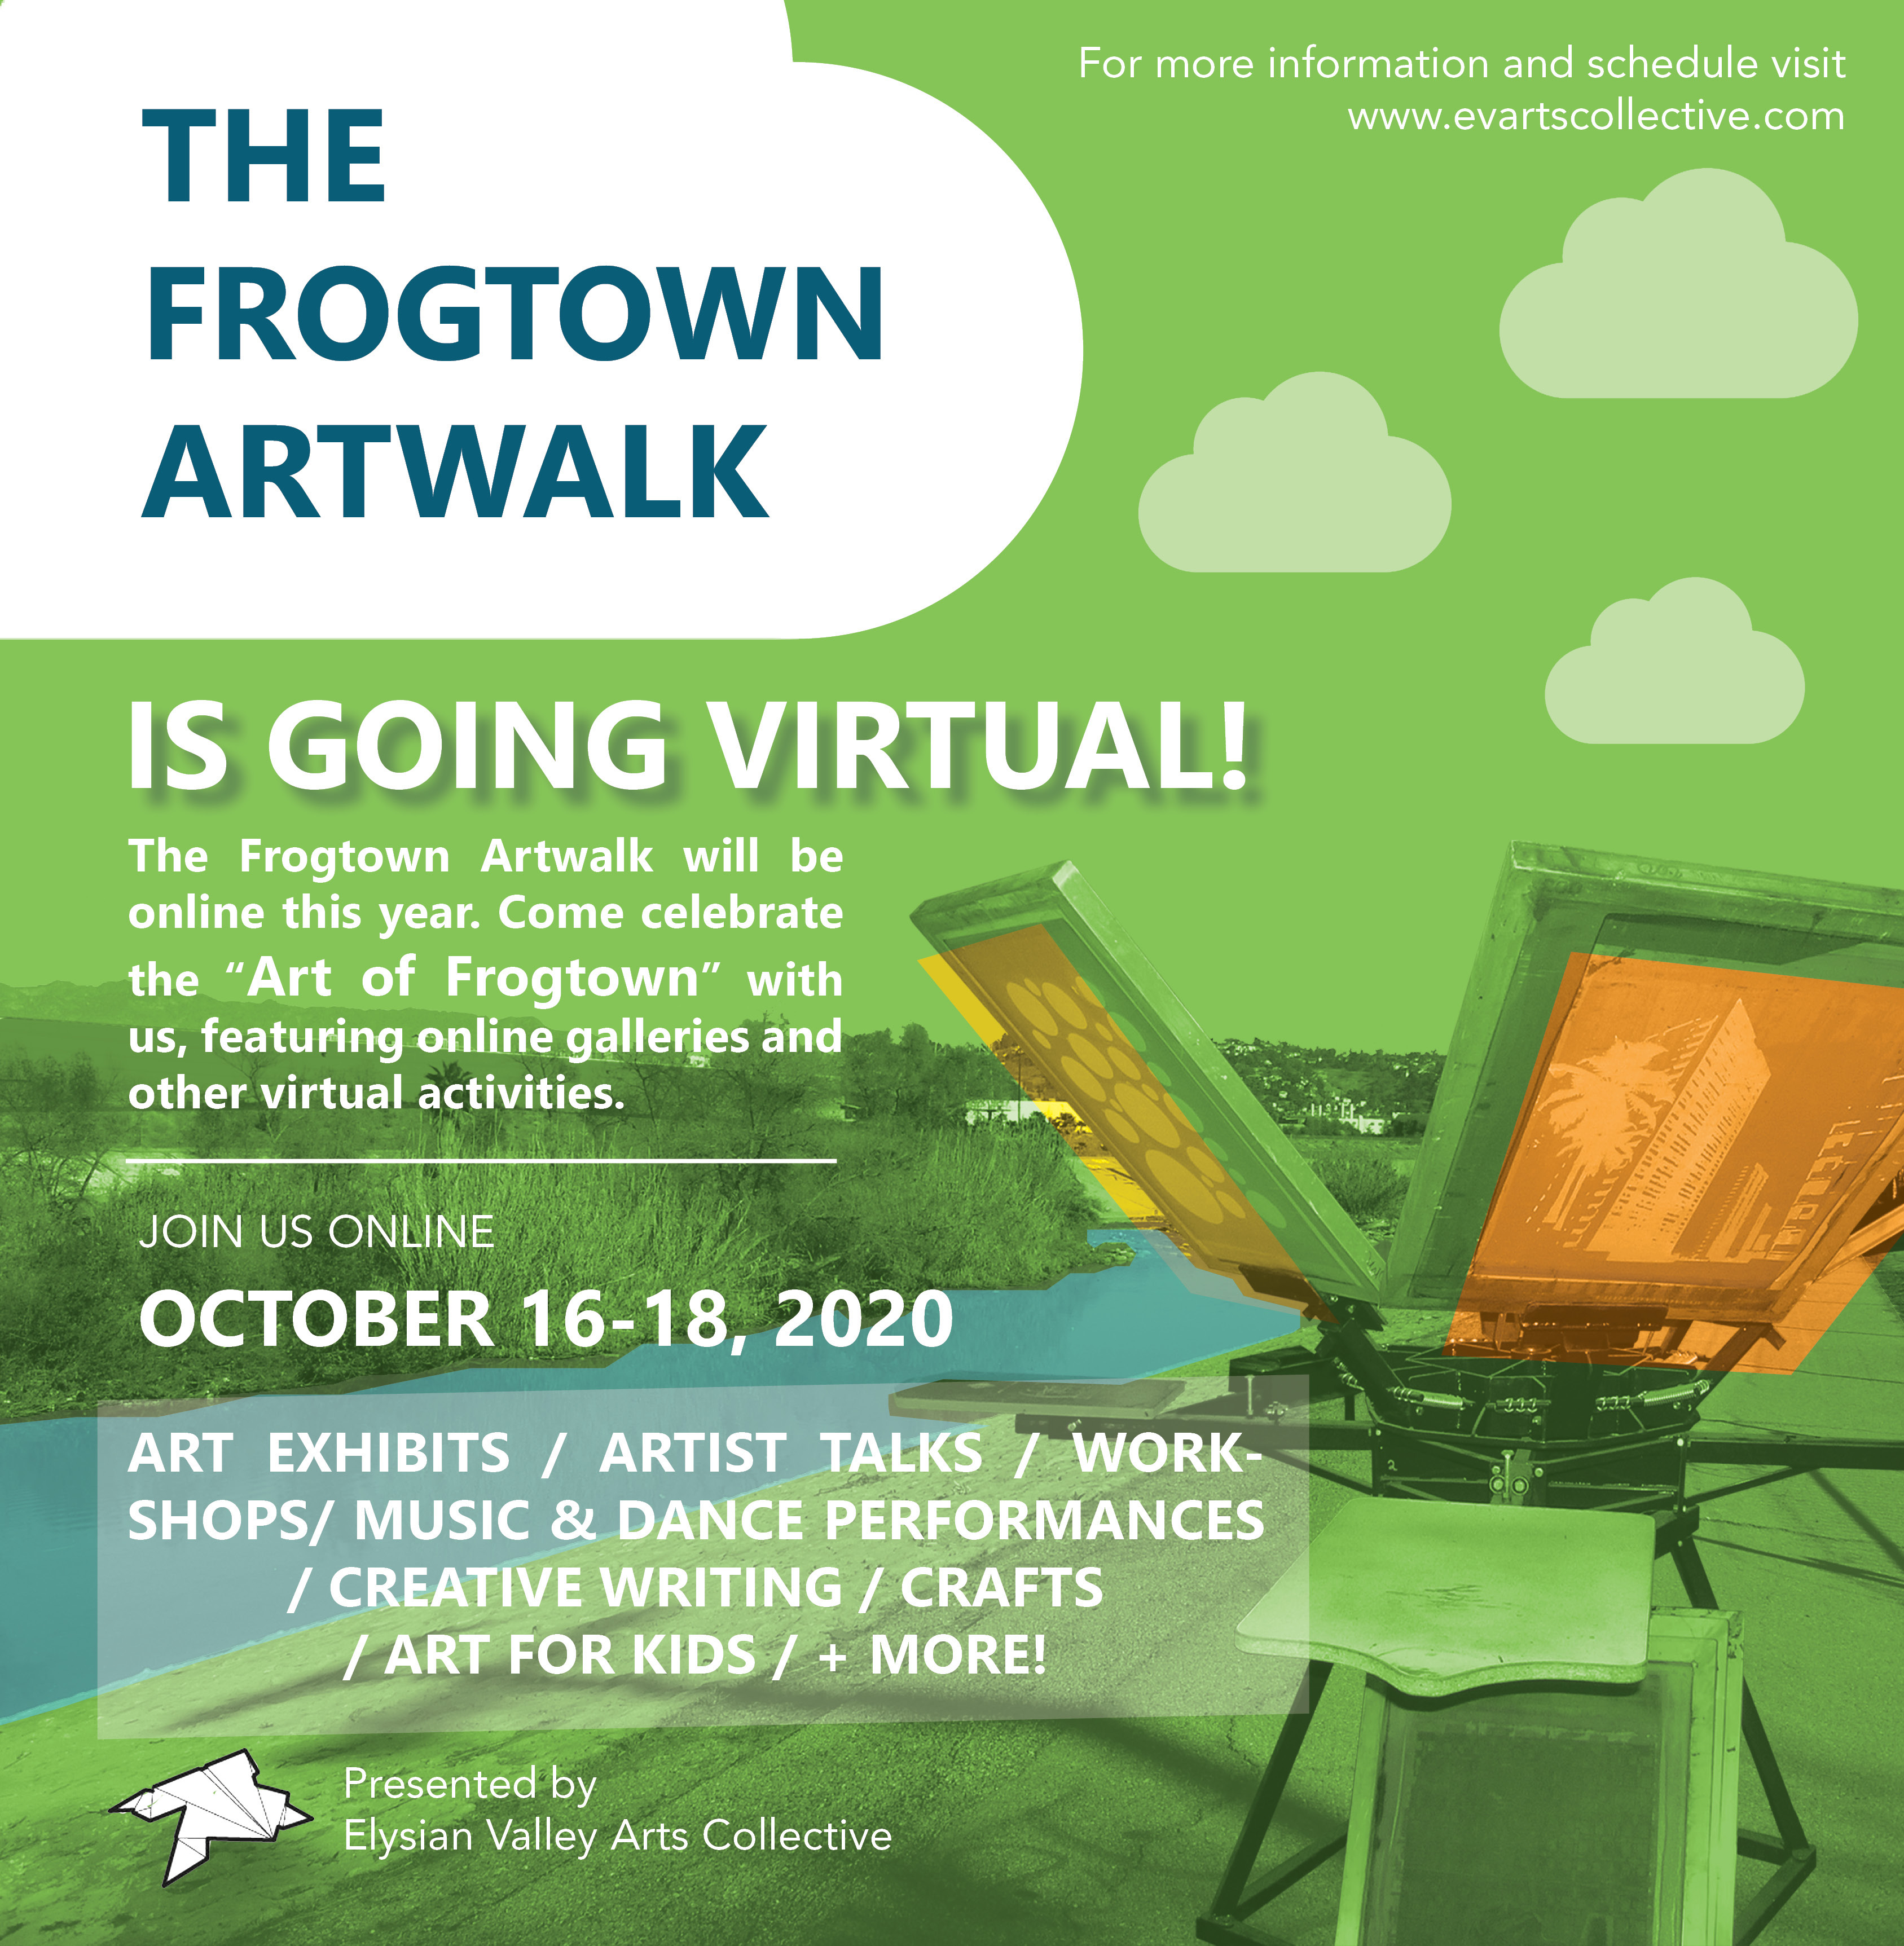 Virtual Frogtown Artwalk Offers Free Workshops, Activities and Presentations